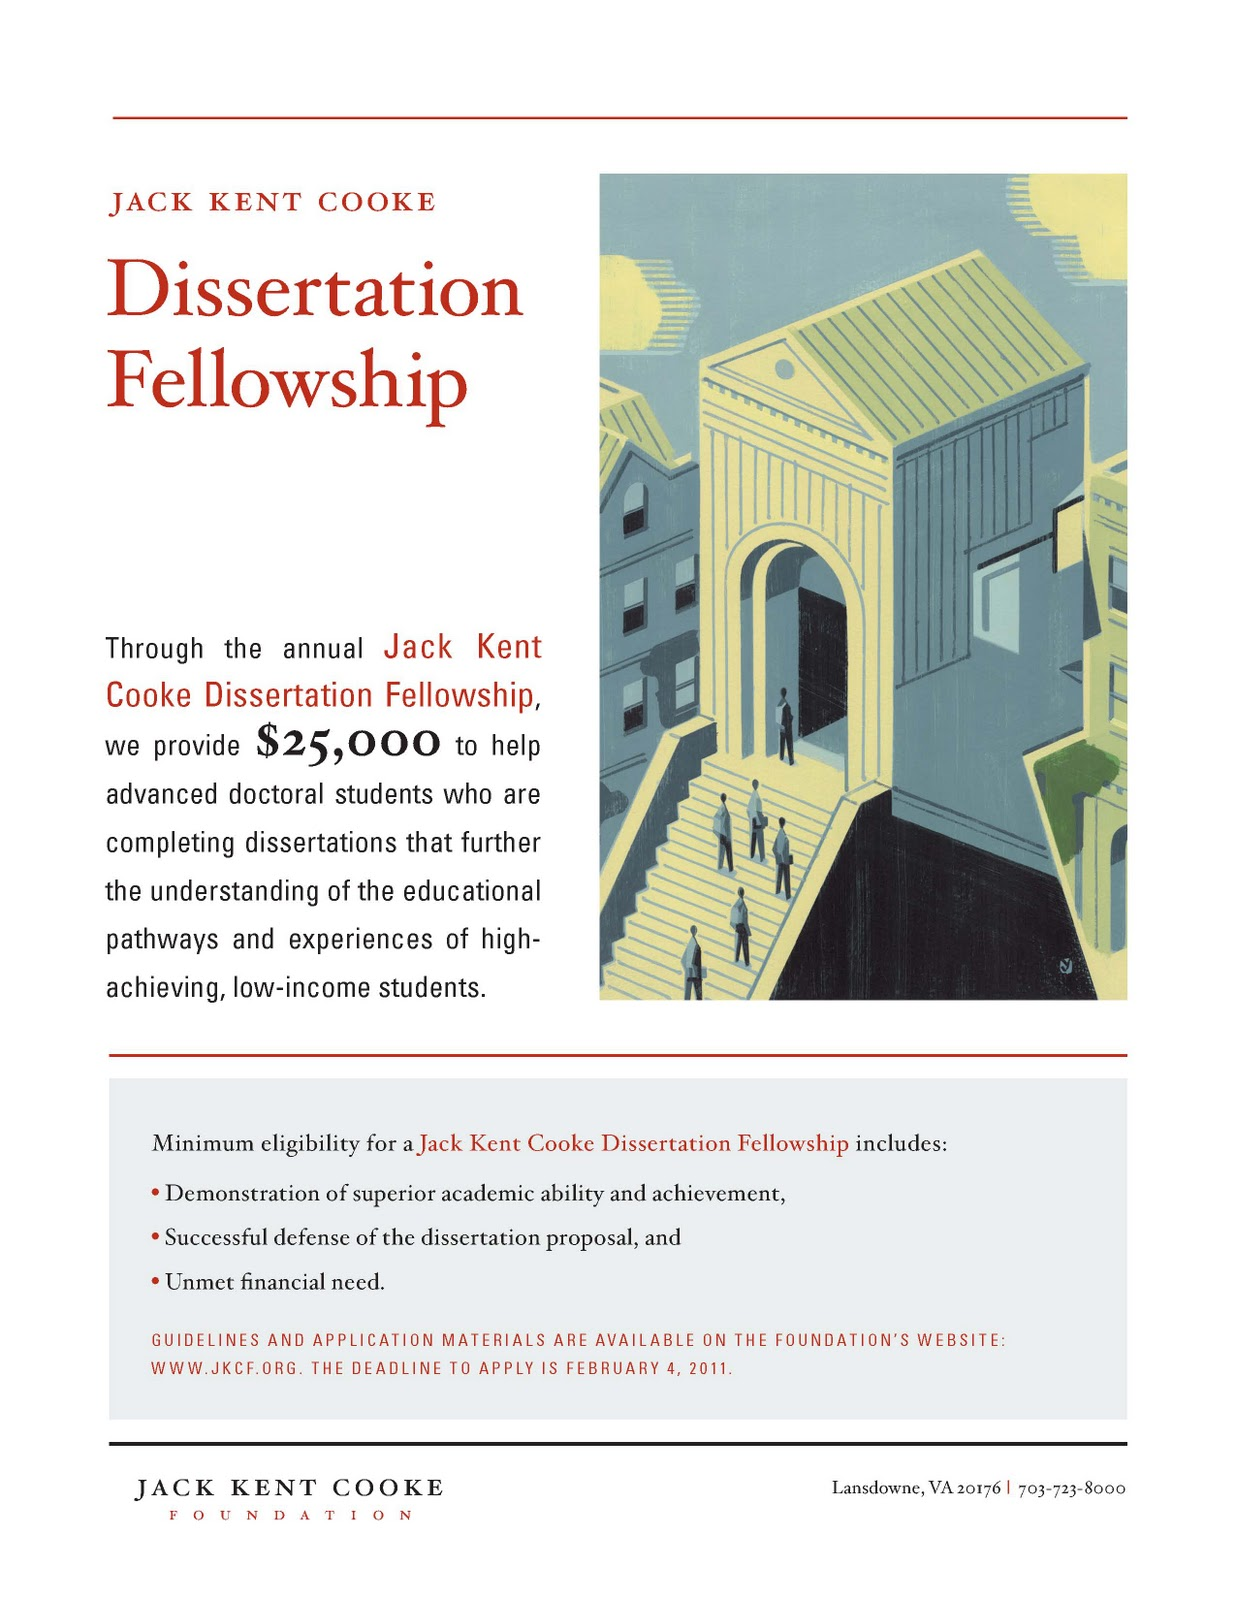 Doctoral dissertation fellowship